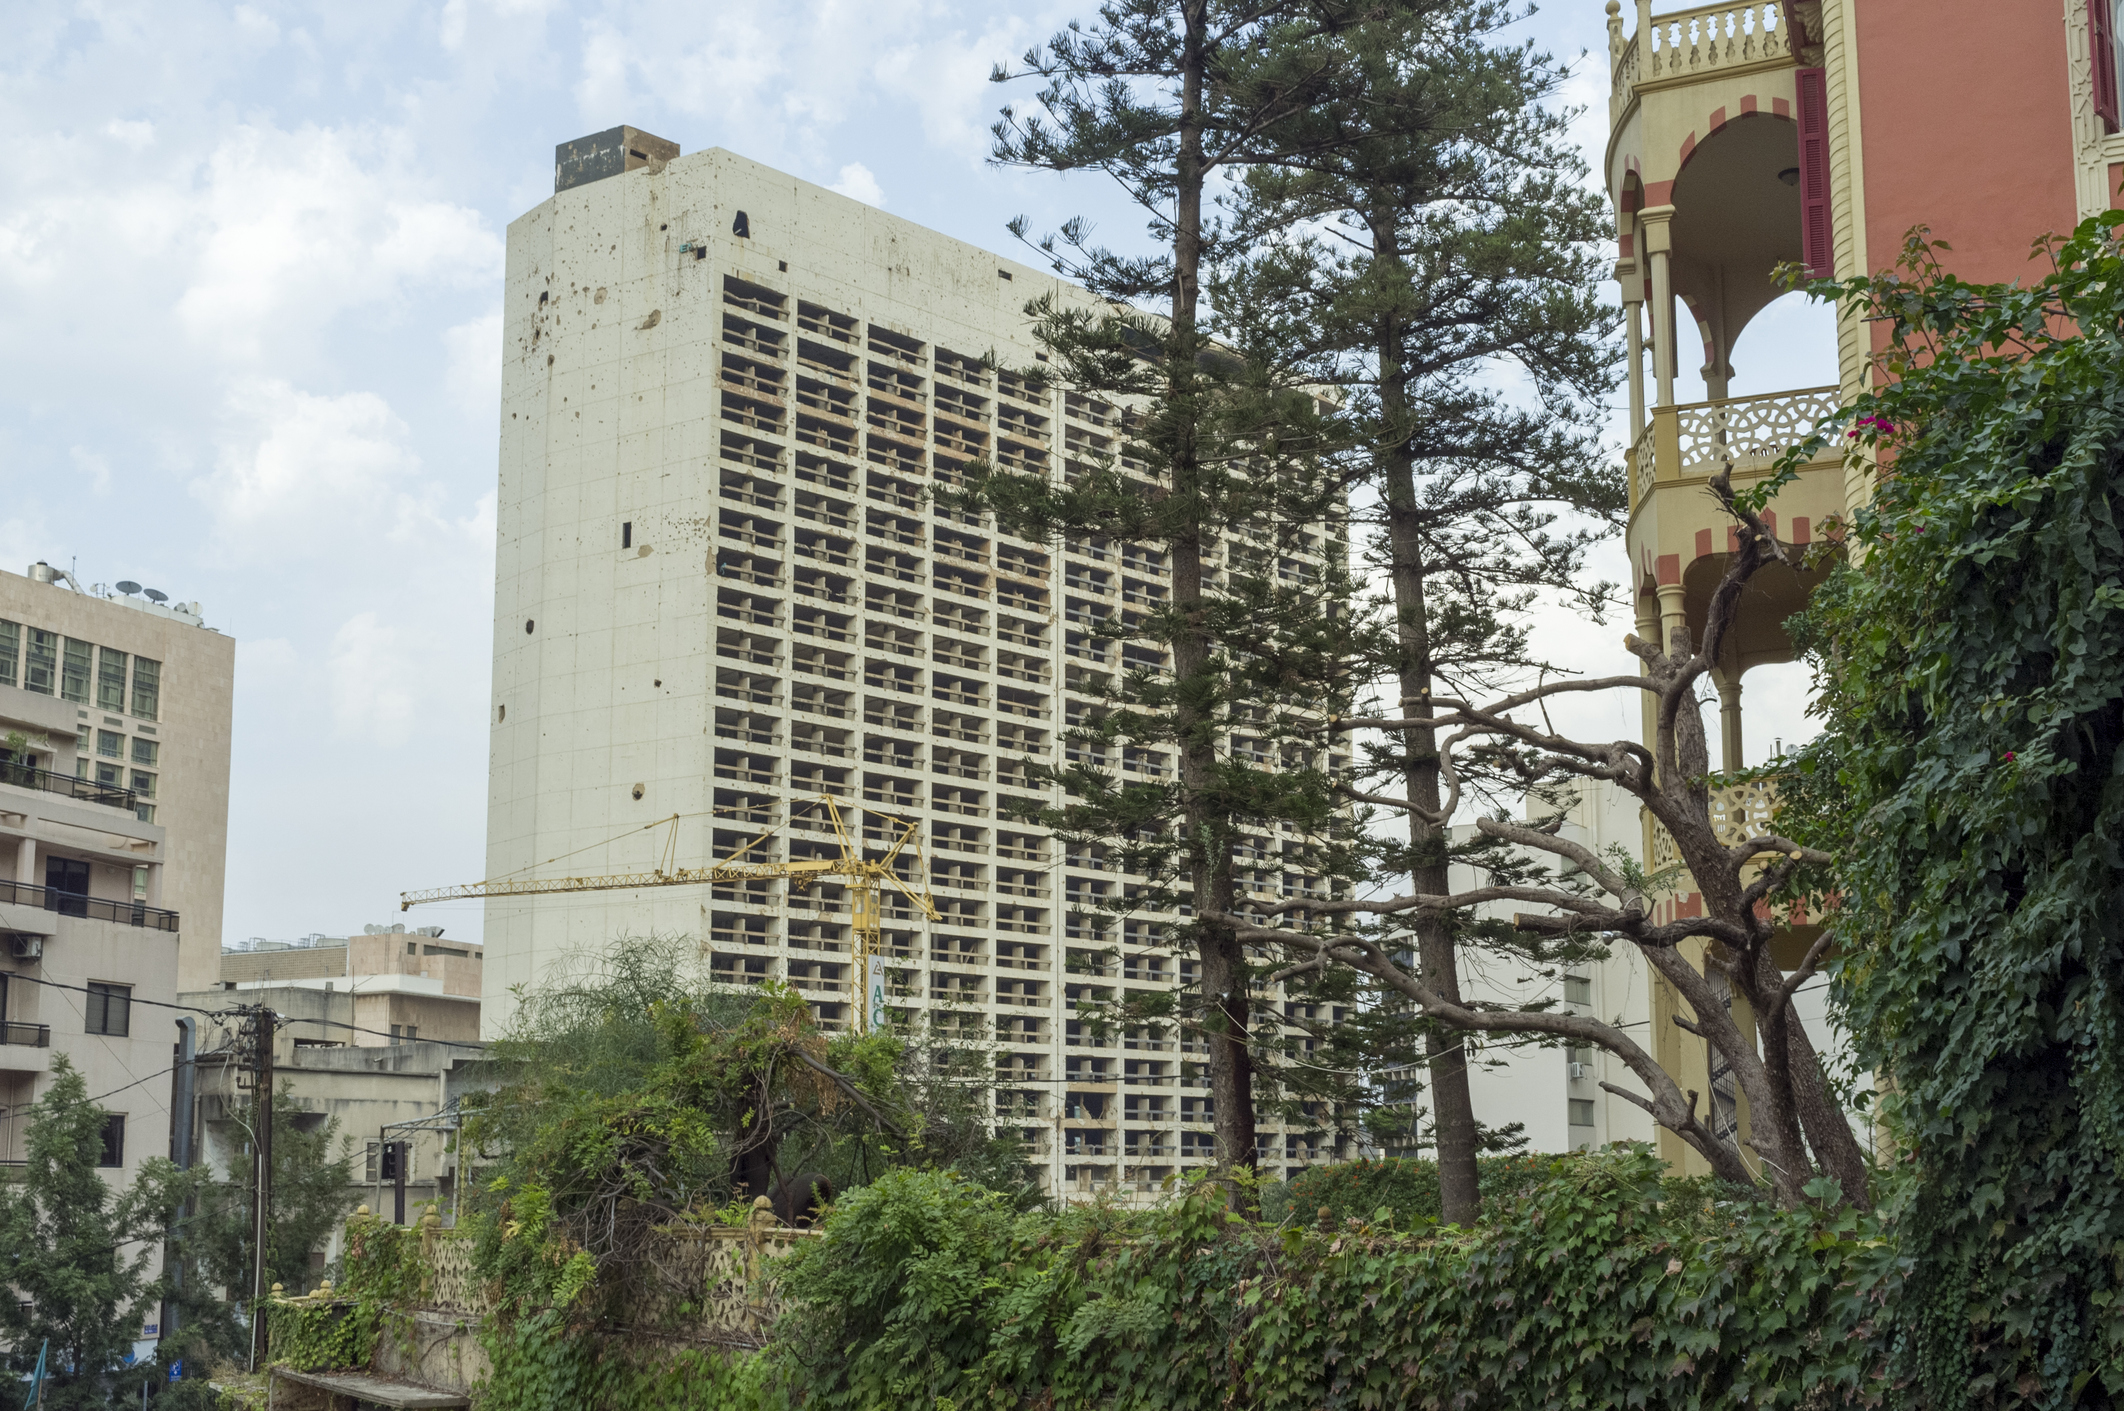 The old Holiday Inn building – bullet-riddled and bomb-shattered. The once-plush hotel in downtown Beirut opened just two years before the civil war broke out